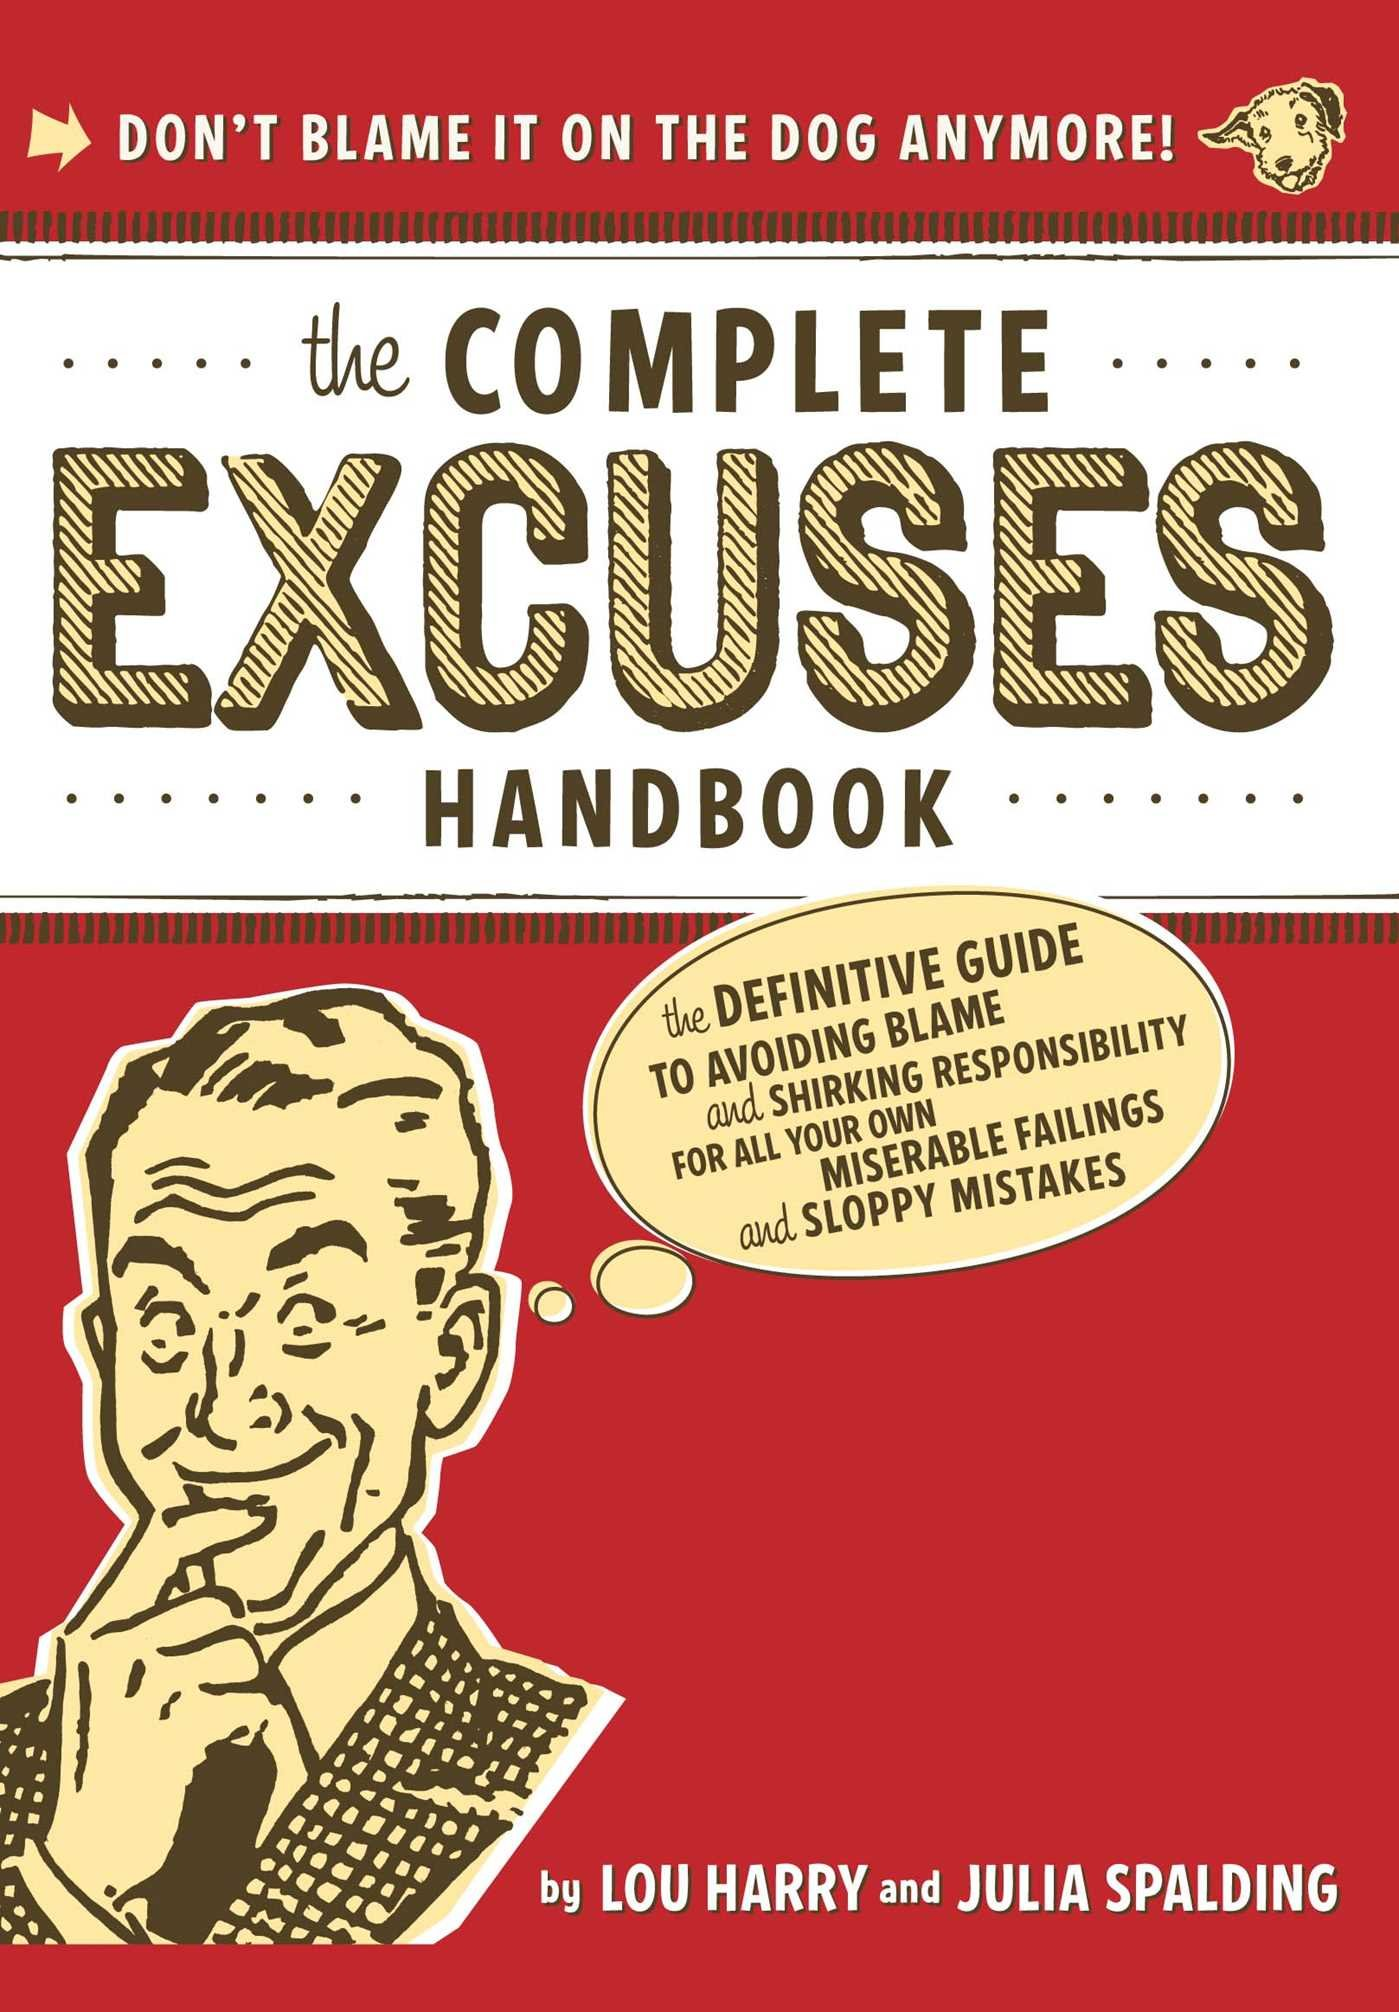 The Complete Excuses Handbook: The Definitive Guide to Avoiding Blame and  Shirking Responsibility for All Your Own Miserable Failings and Sloppy  Mistakes: ...